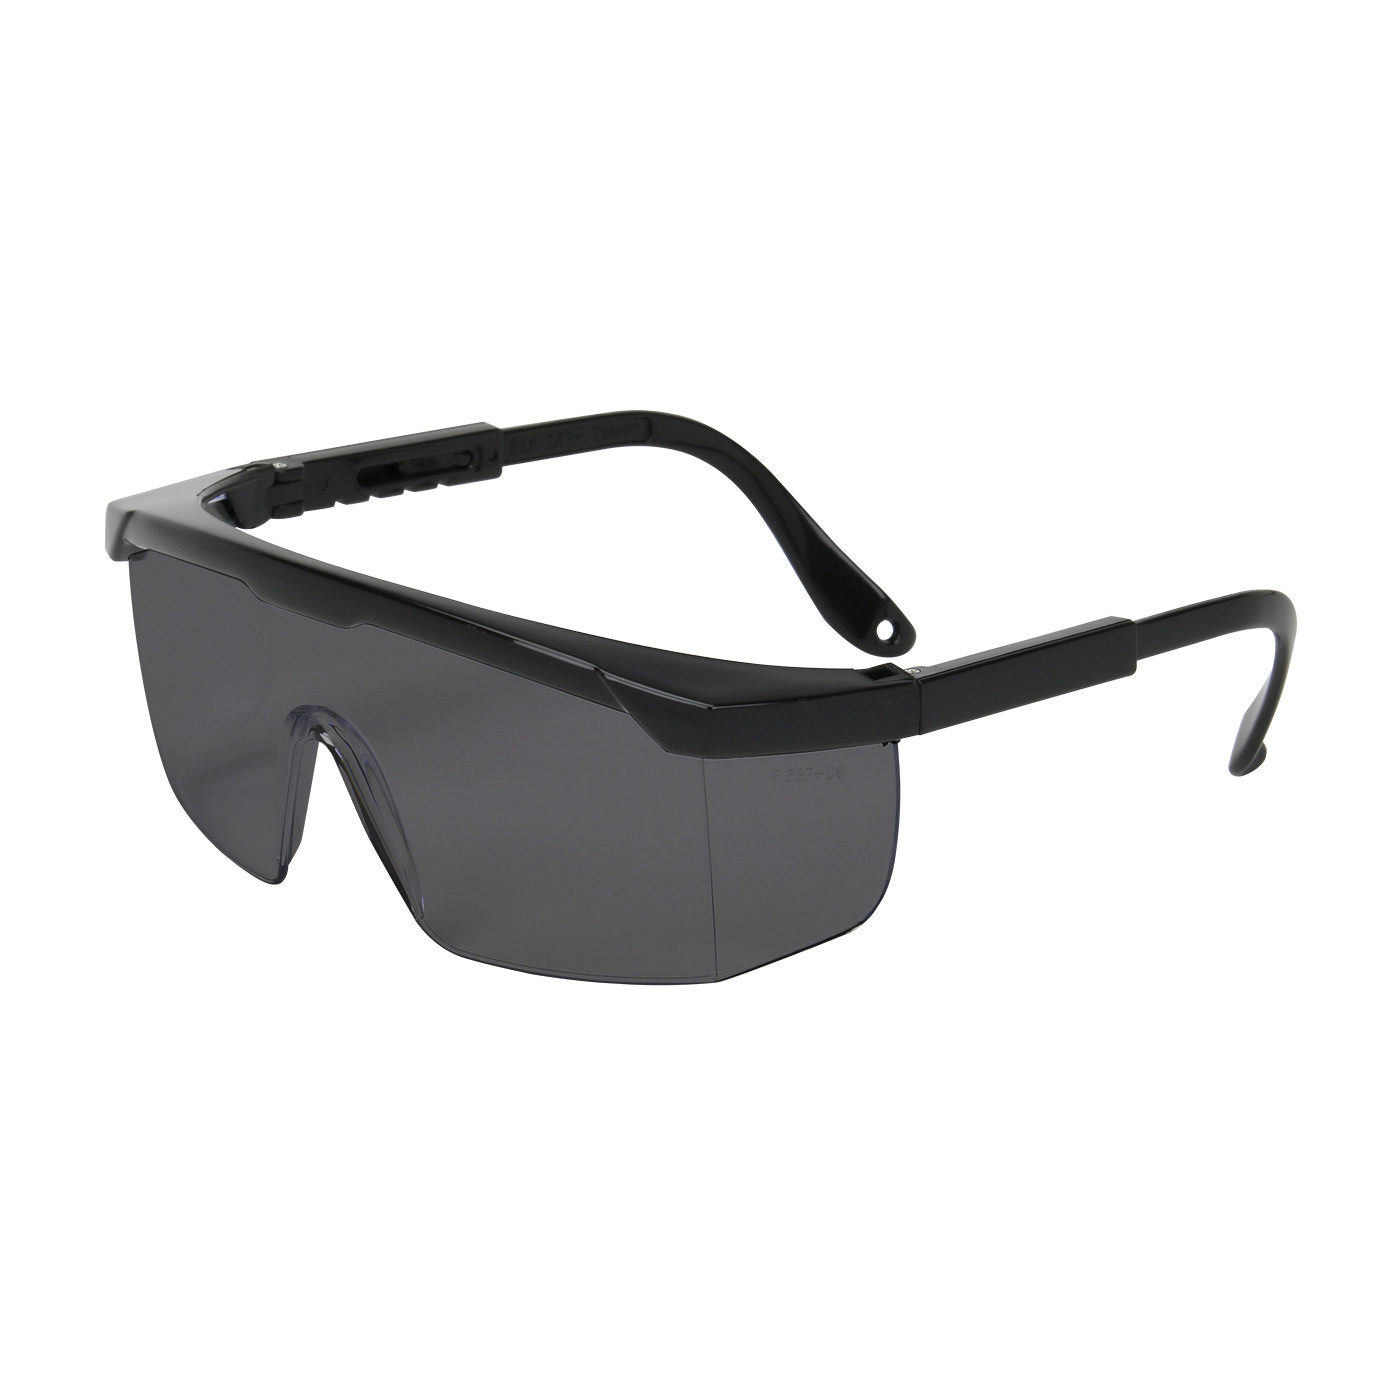 Semi-Rimless Safety Glasses with Black Frame, Gray Lens and Anti-Scratch Coating, Black, OS